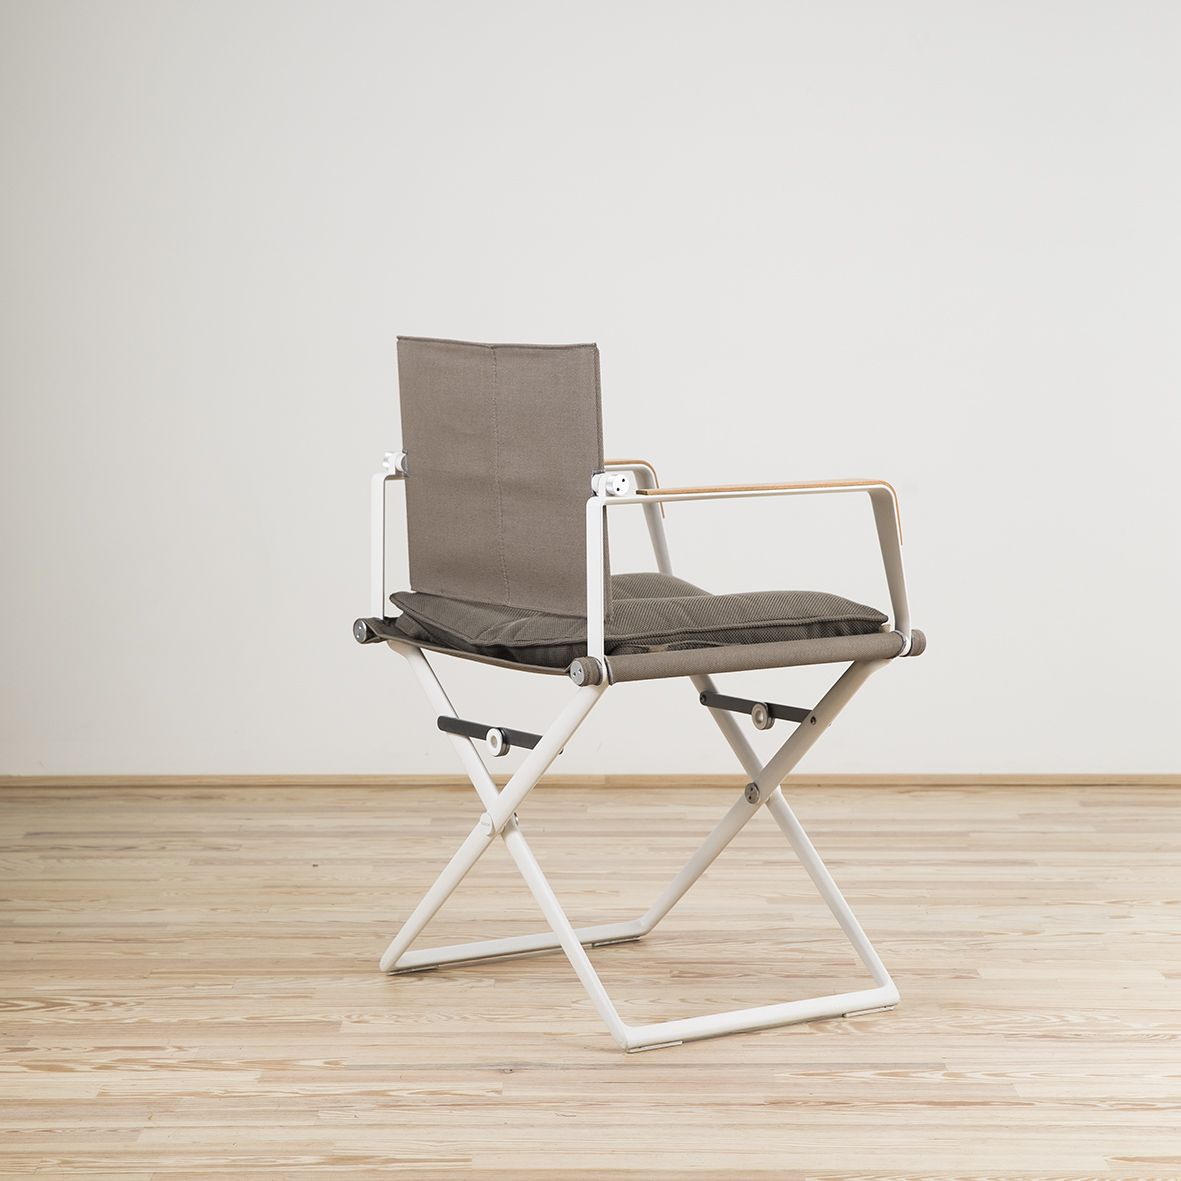 Seax Taupe chair designed by Jean-Marie Massaud and edited by Dedon